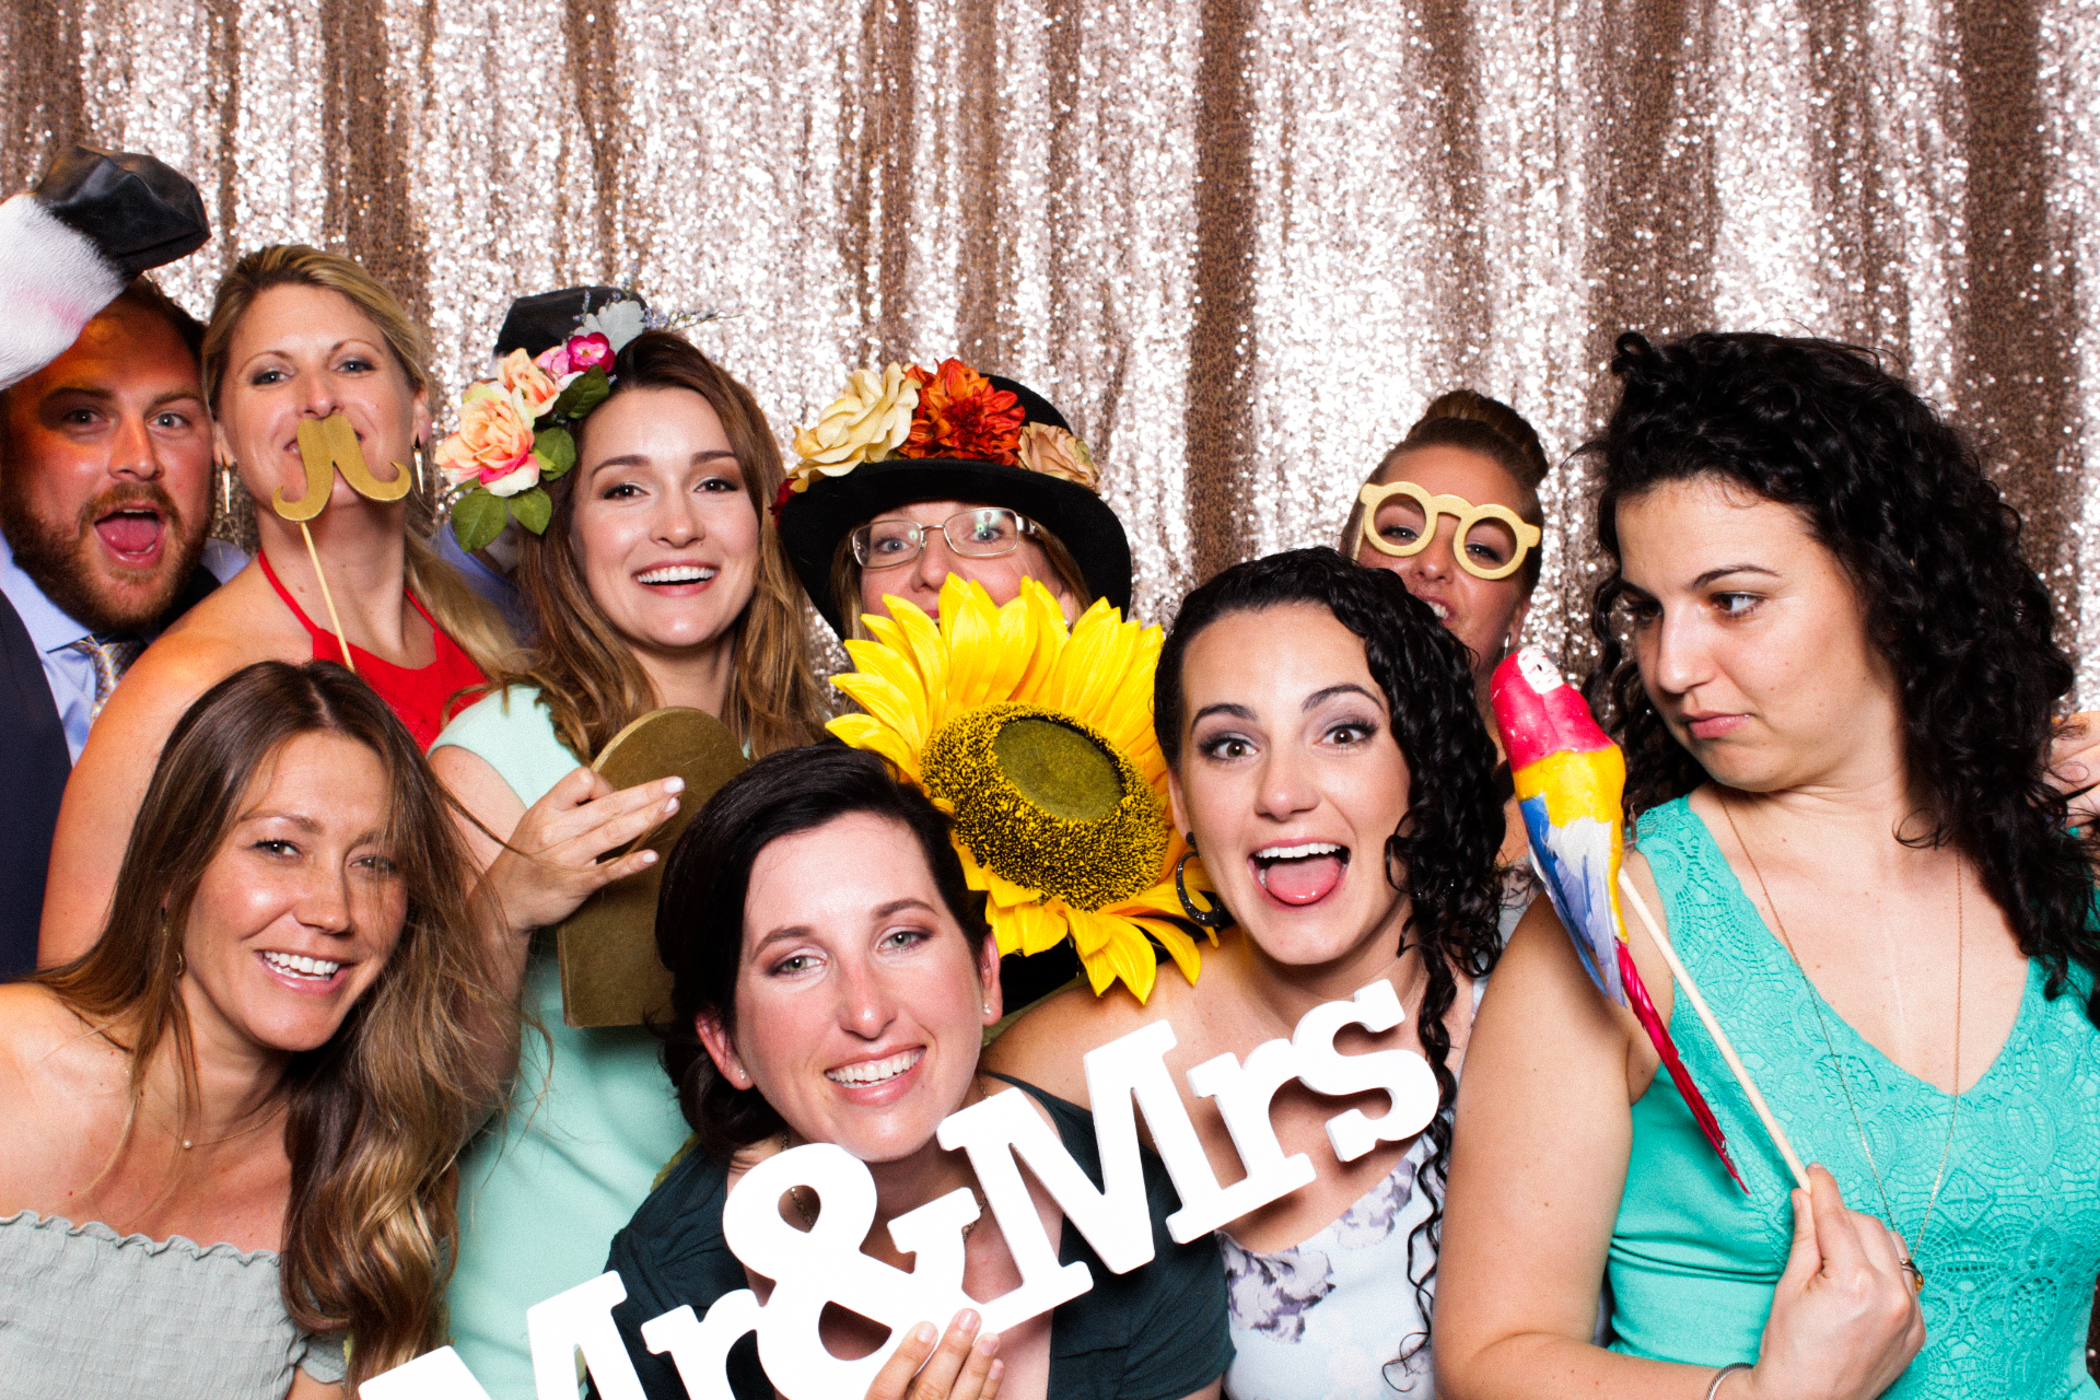 The_Reverie_Booth-Boca_Raton_Photobooth-Wedding_Photobooth_Florida-Florida_Photobooth_Rental-Wedding_Photobooth-058.jpg